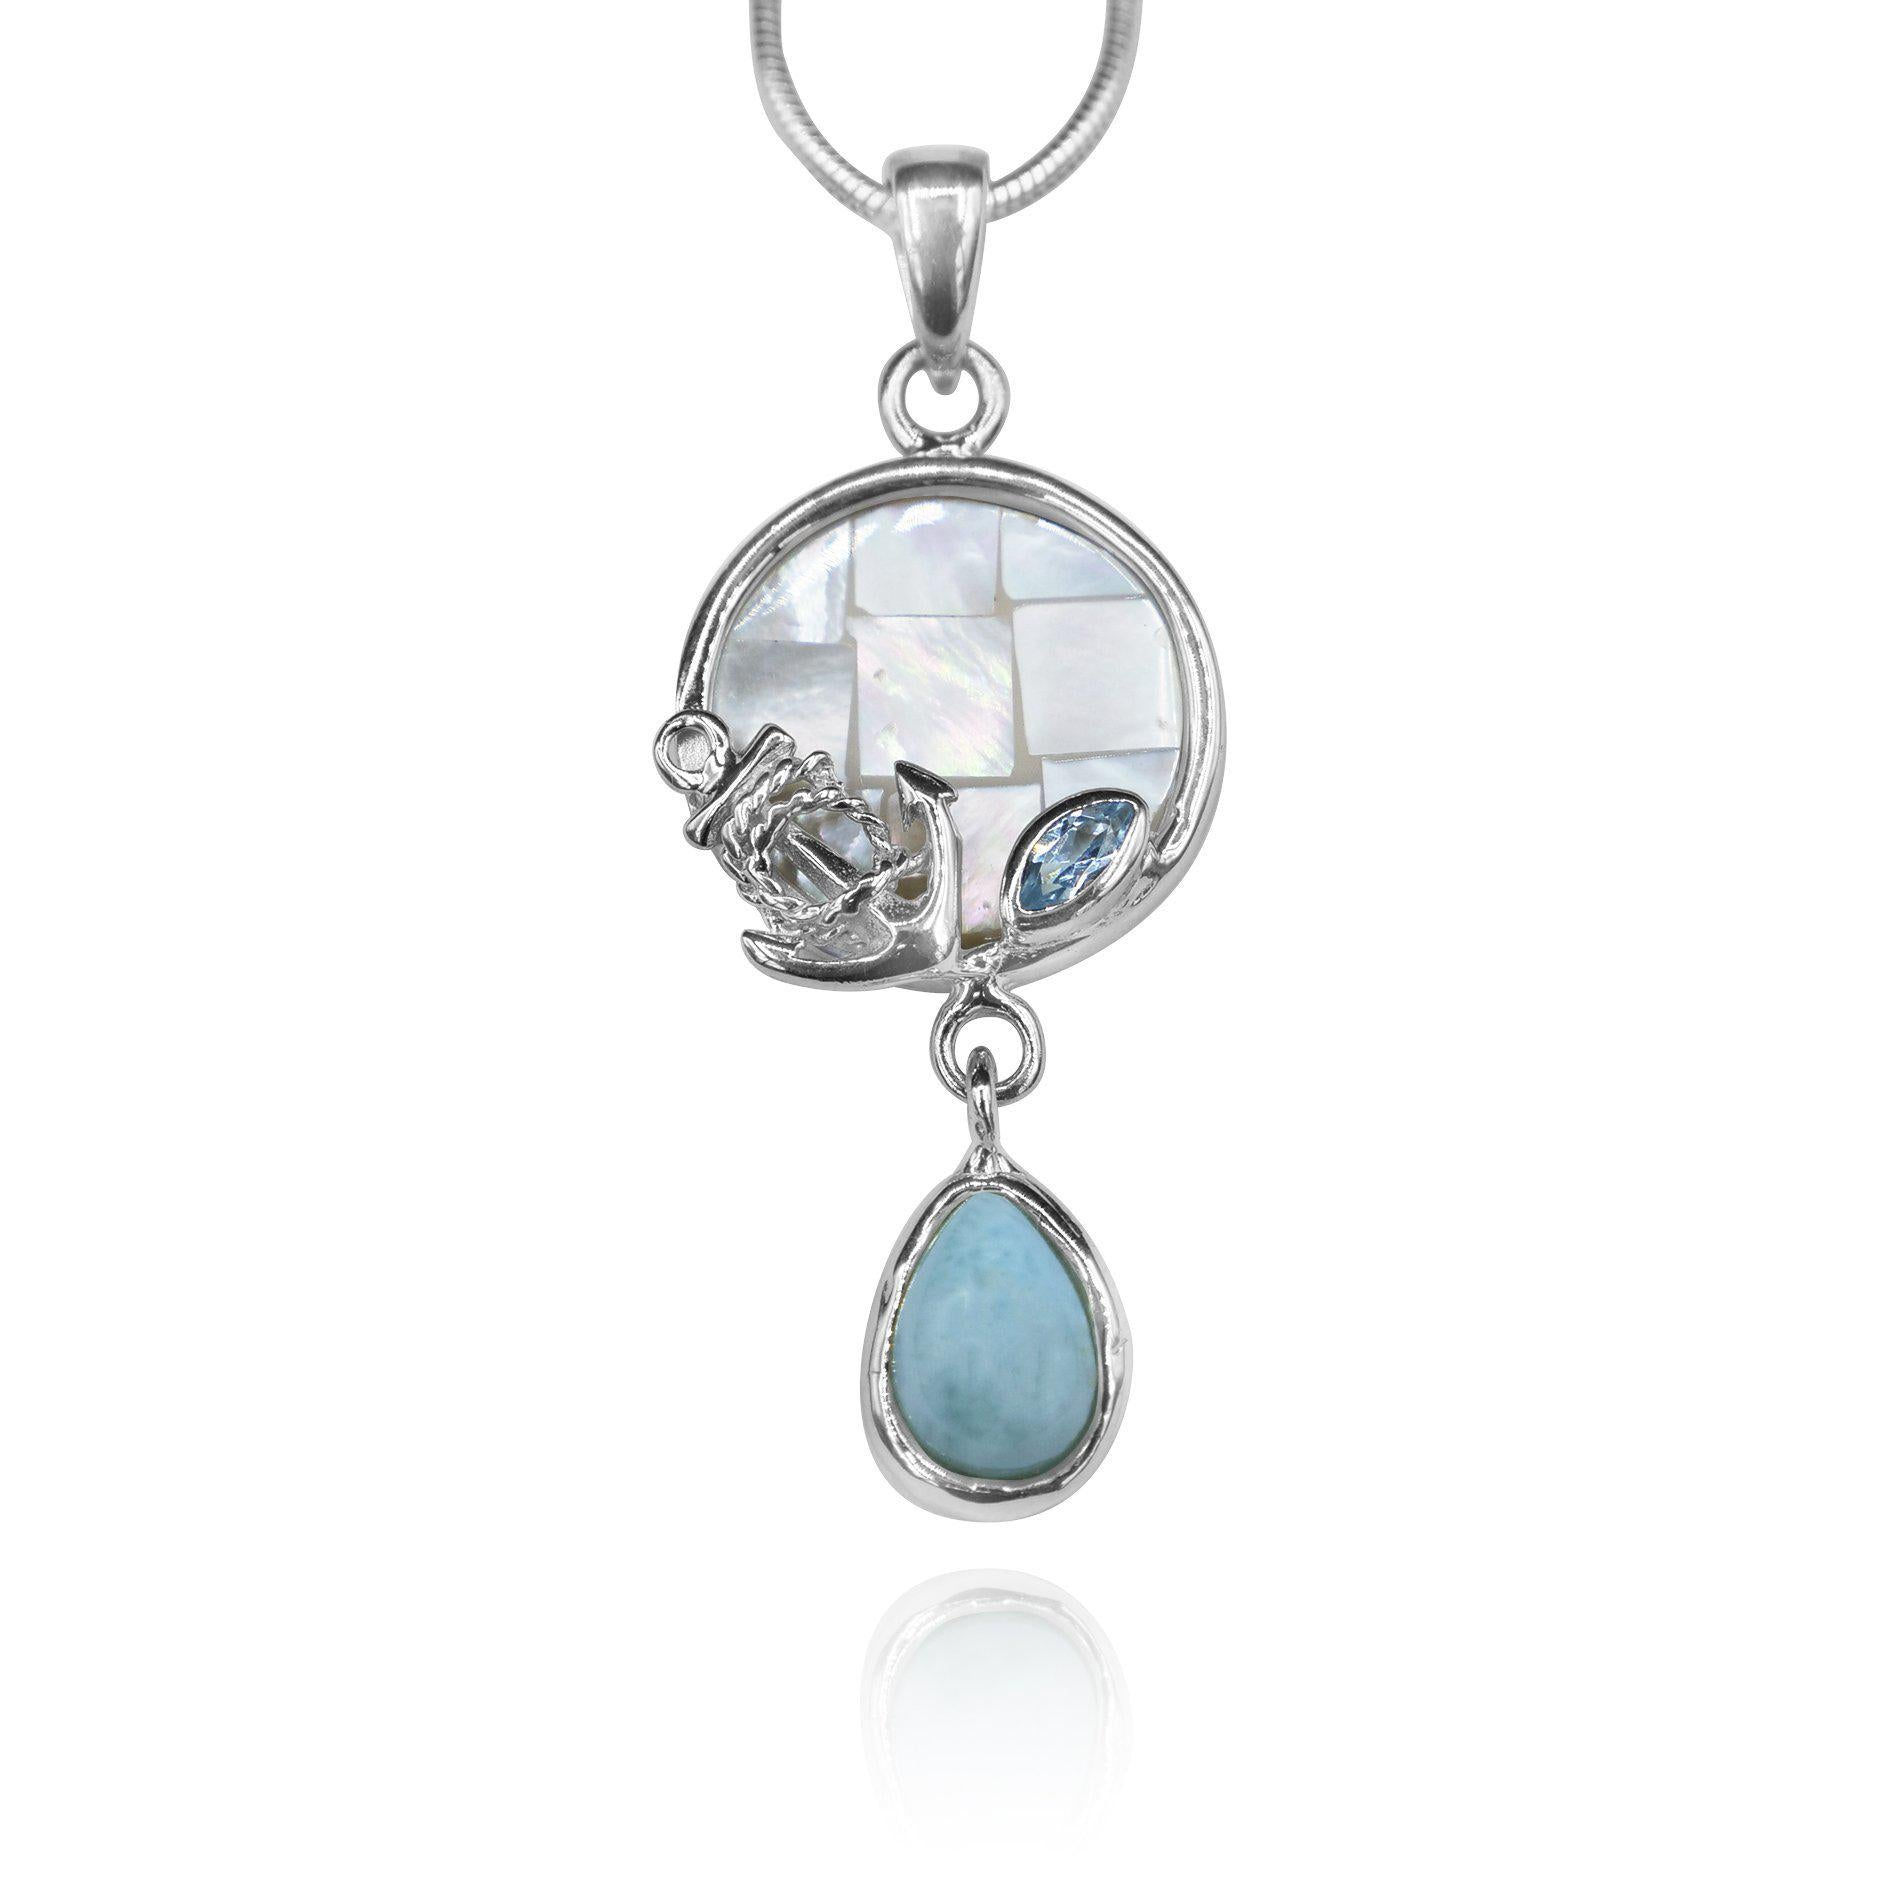 Anchor Pendant Necklace with Blue Topaz, Mother of Pearl Mosaic and Larimar Stone